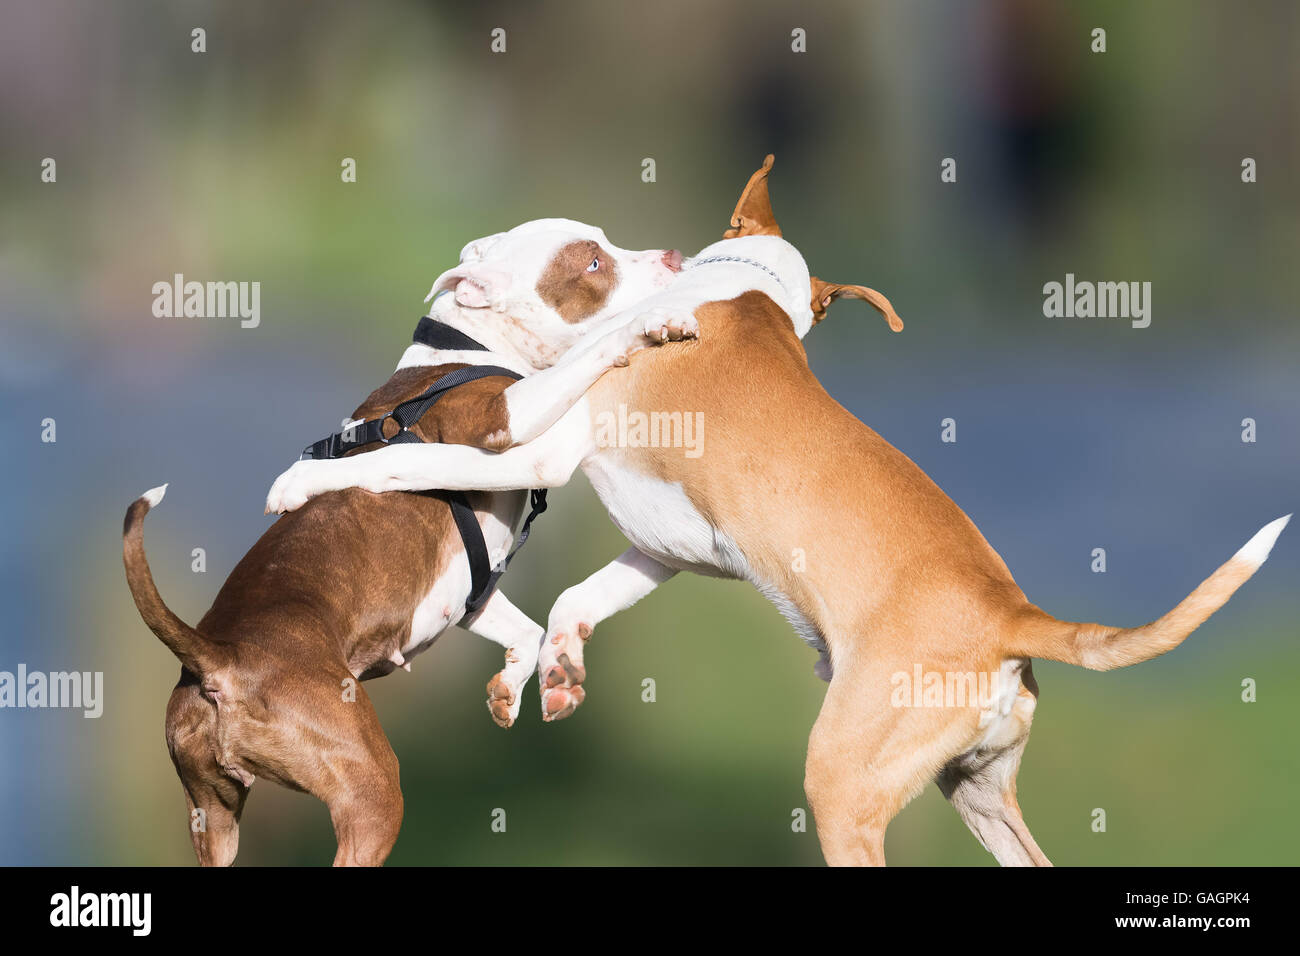 Wild play of two dogs at a park. - Stock Image